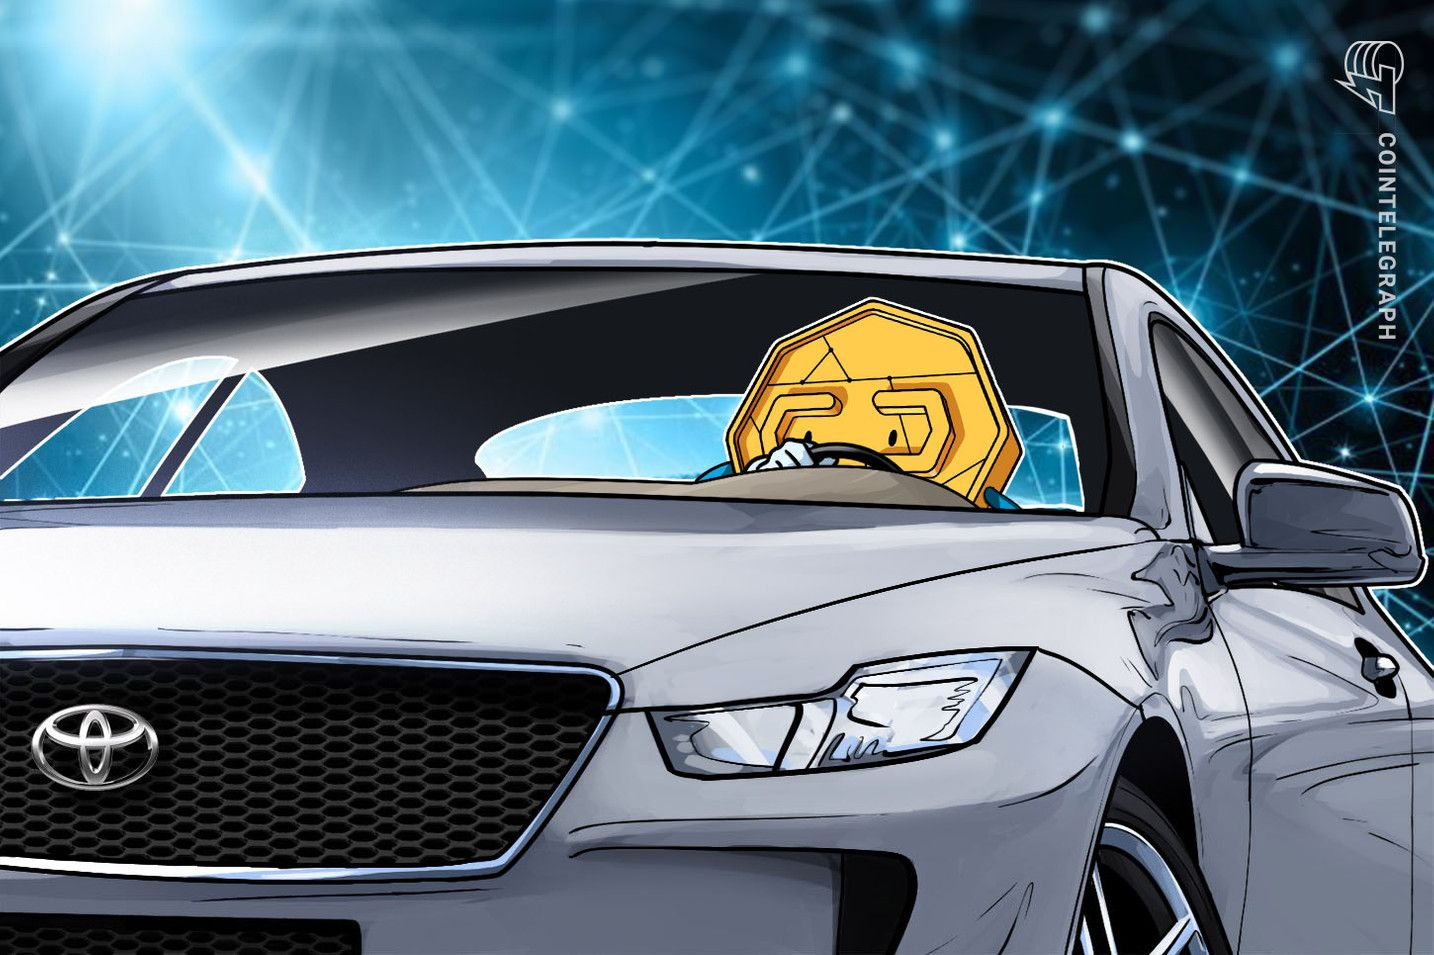 Toyota S It Arm Works On Digital Token Pilot With Crypto Exchange Used Hyundai Cryptocurrency Blockchain